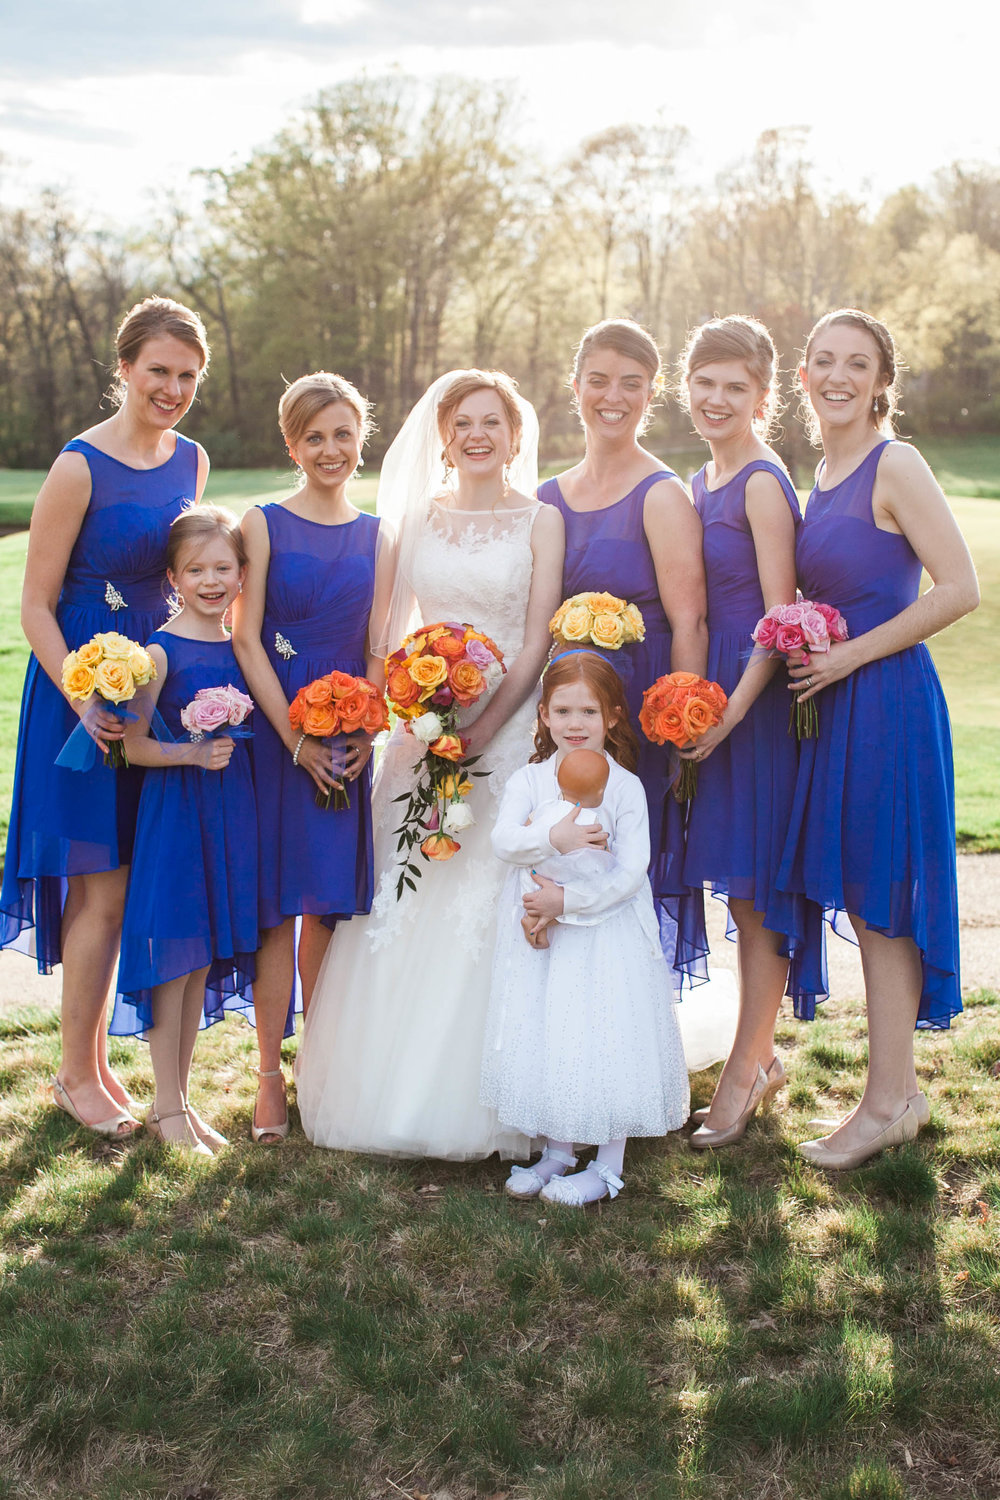 68 Color Block Rose Bouquets Sapphire Bridesmaids Chester County Wedding Planner.jpg